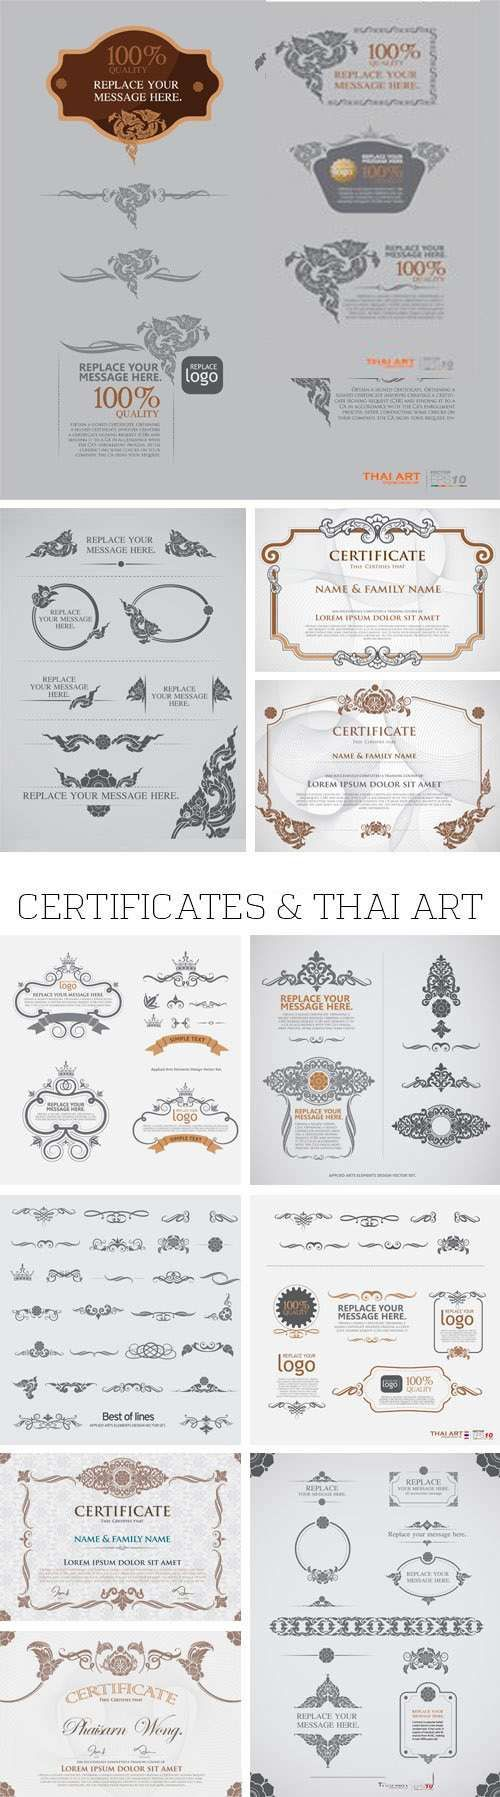 15 best Thai Modern images on Pinterest | Thai art, Thai pattern and ...